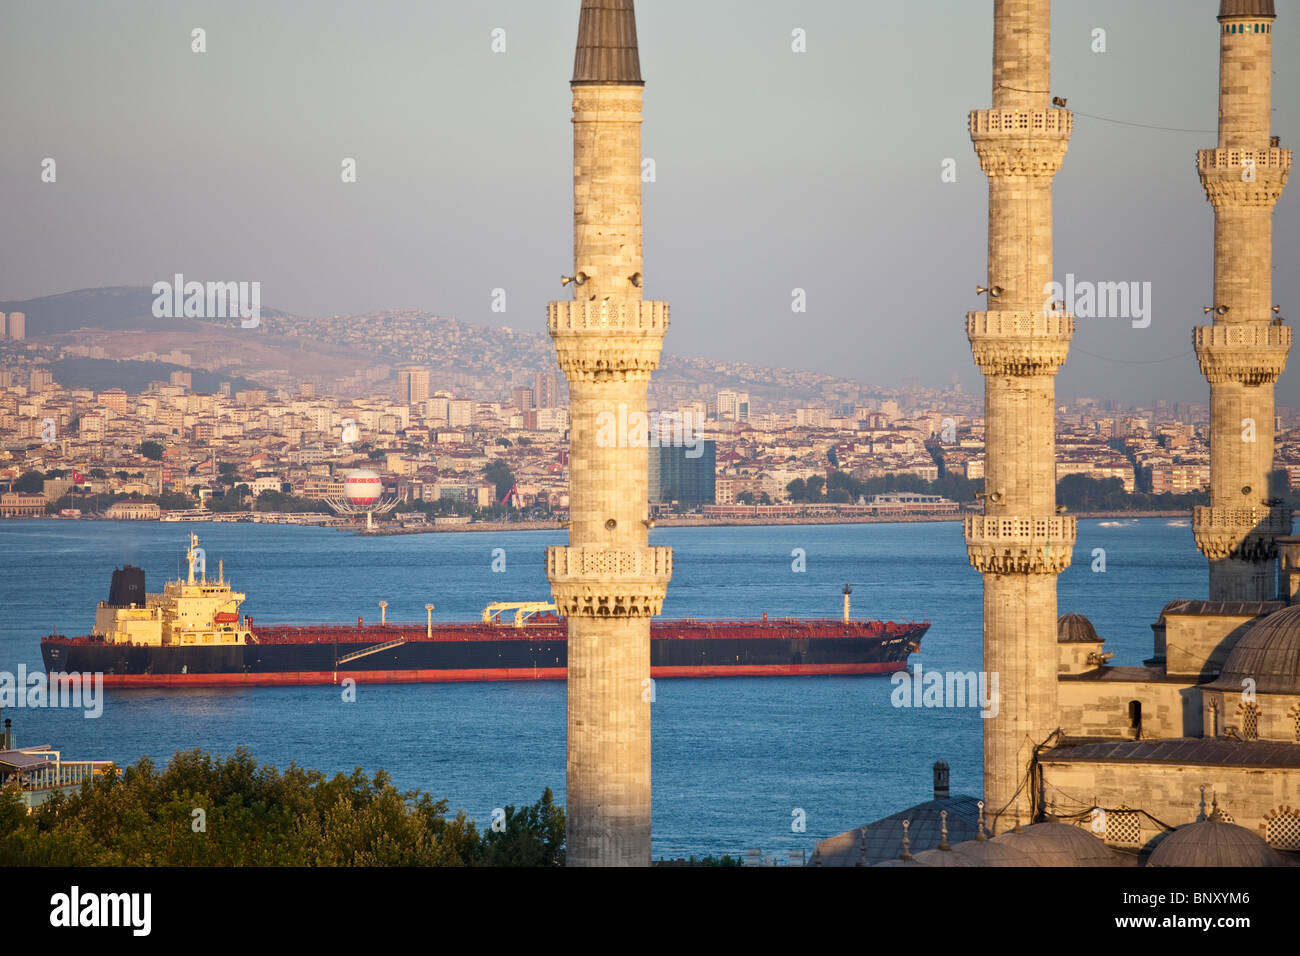 Tanker and Sultan Ahmed or the Blue Mosque in Istatnbul, Turkey - Stock Image